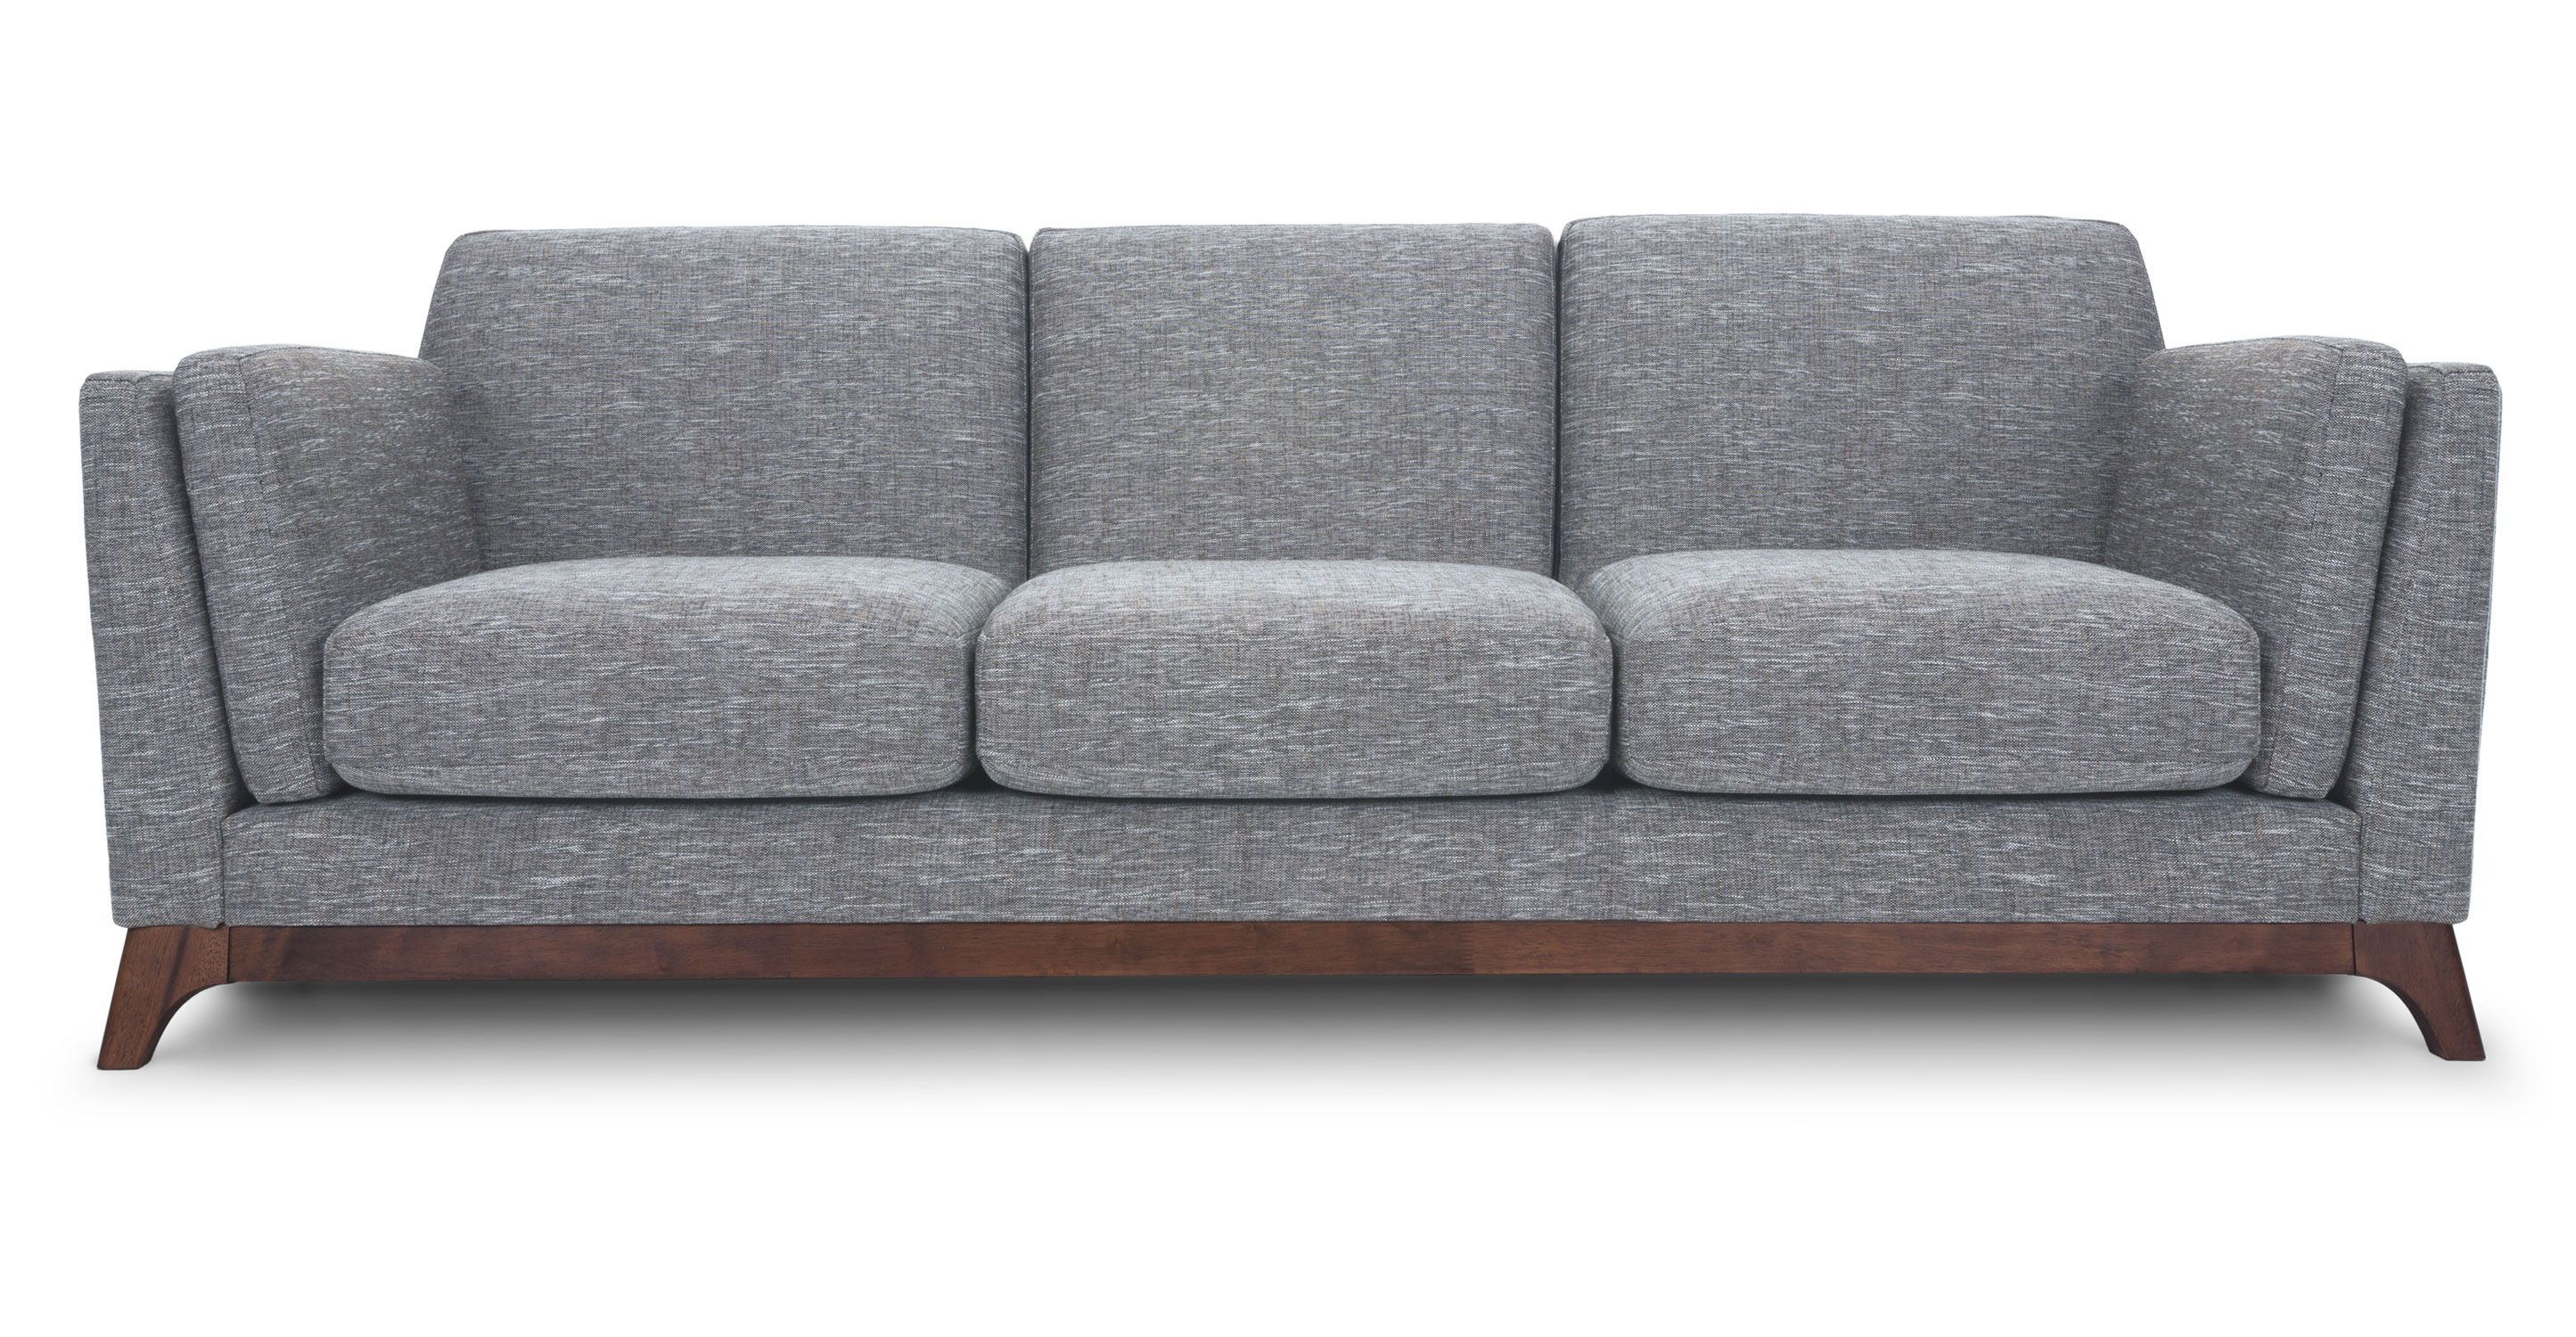 Gray sofa 3 seater with solid wood legs article ceni for Contemporary sectional sofas